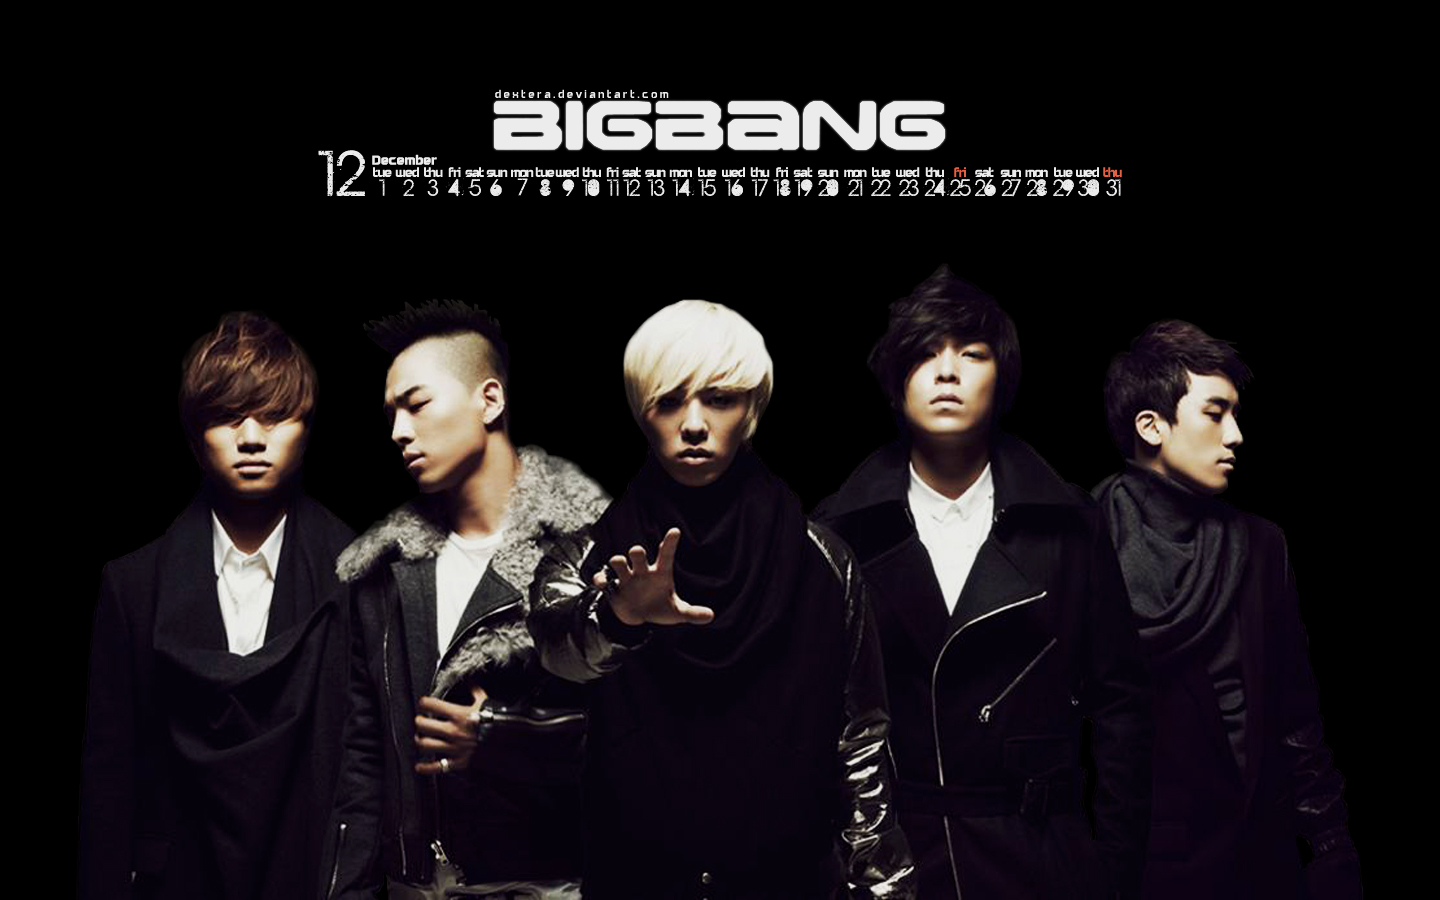 big bang images big bang hd wallpaper and background photos  32085057